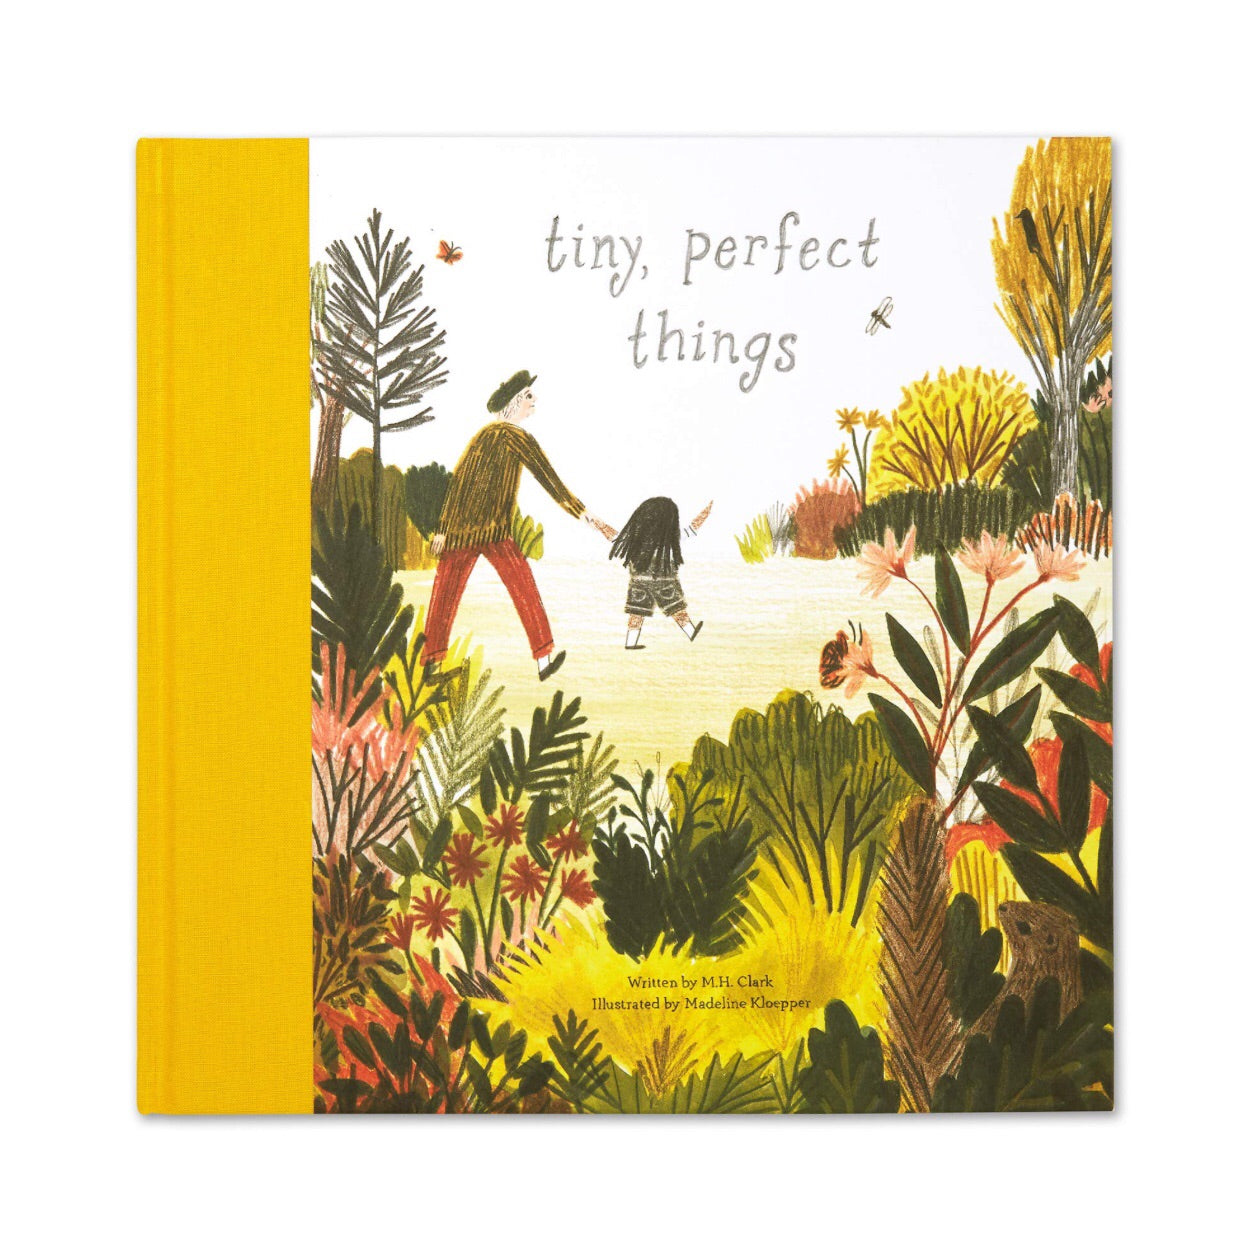 Tiny, Perfect Things | Written by M.H. Clark  | HARD COVER BOOK